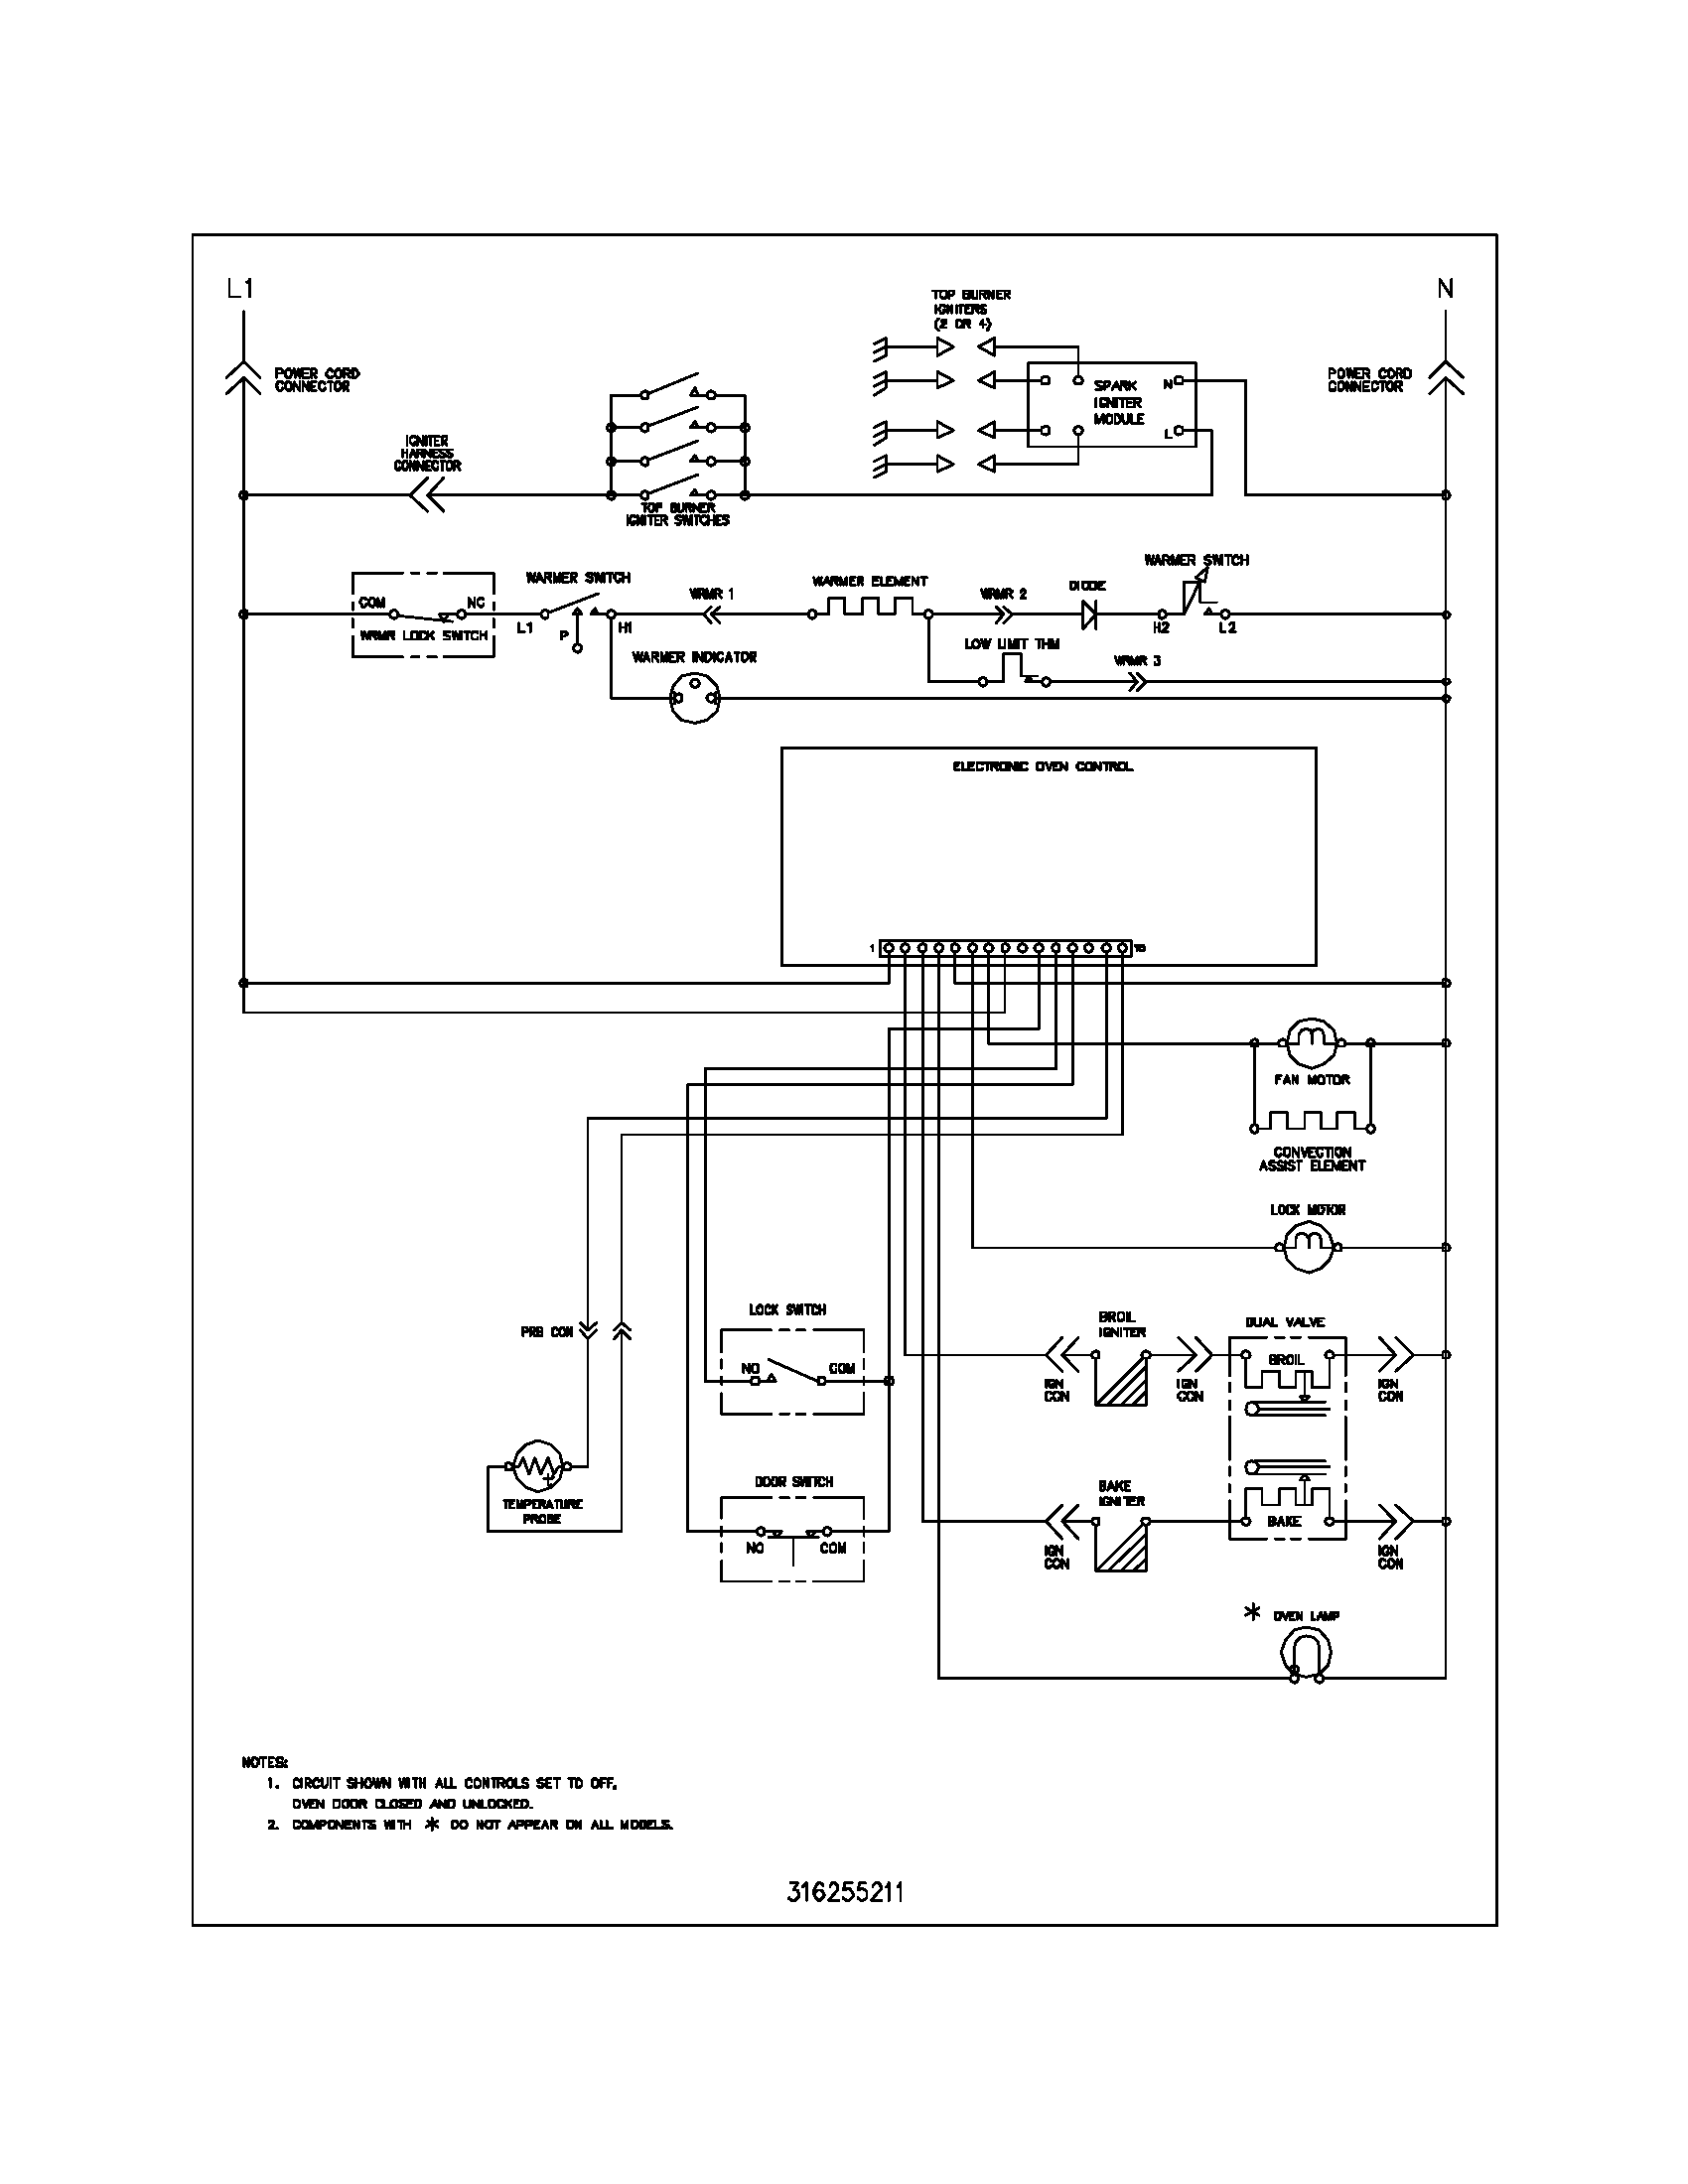 wiring schematic parts frigidaire plgf389ccc gas range timer stove clocks and appliance gas fireplace wiring diagram at reclaimingppi.co